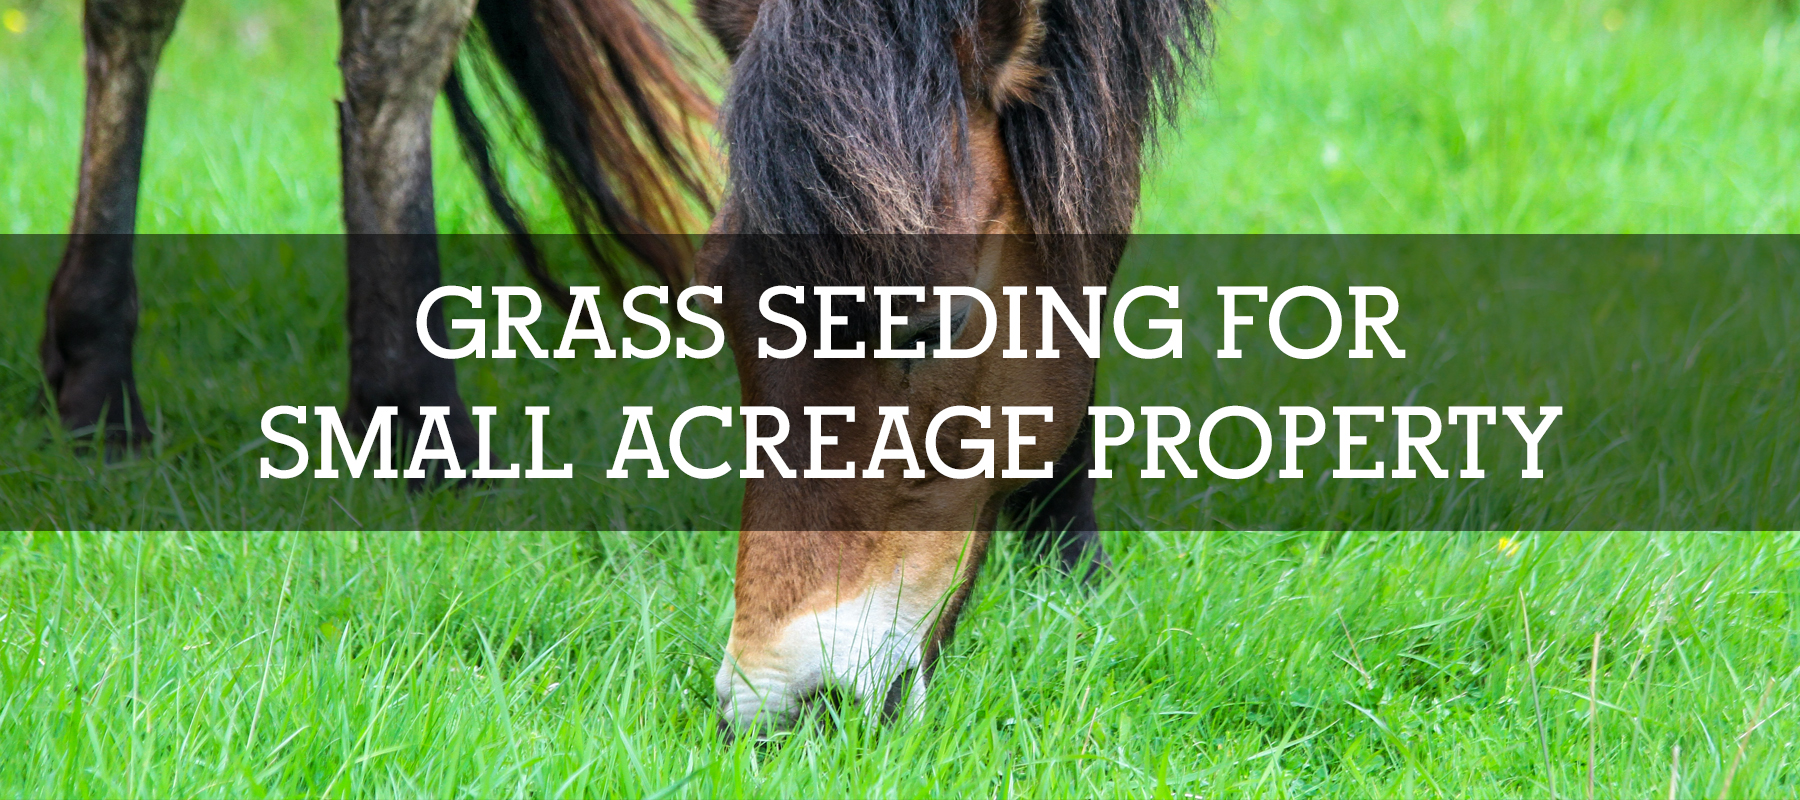 GRASS SEEDING FOR SMALL ACREAGE PROPERTY